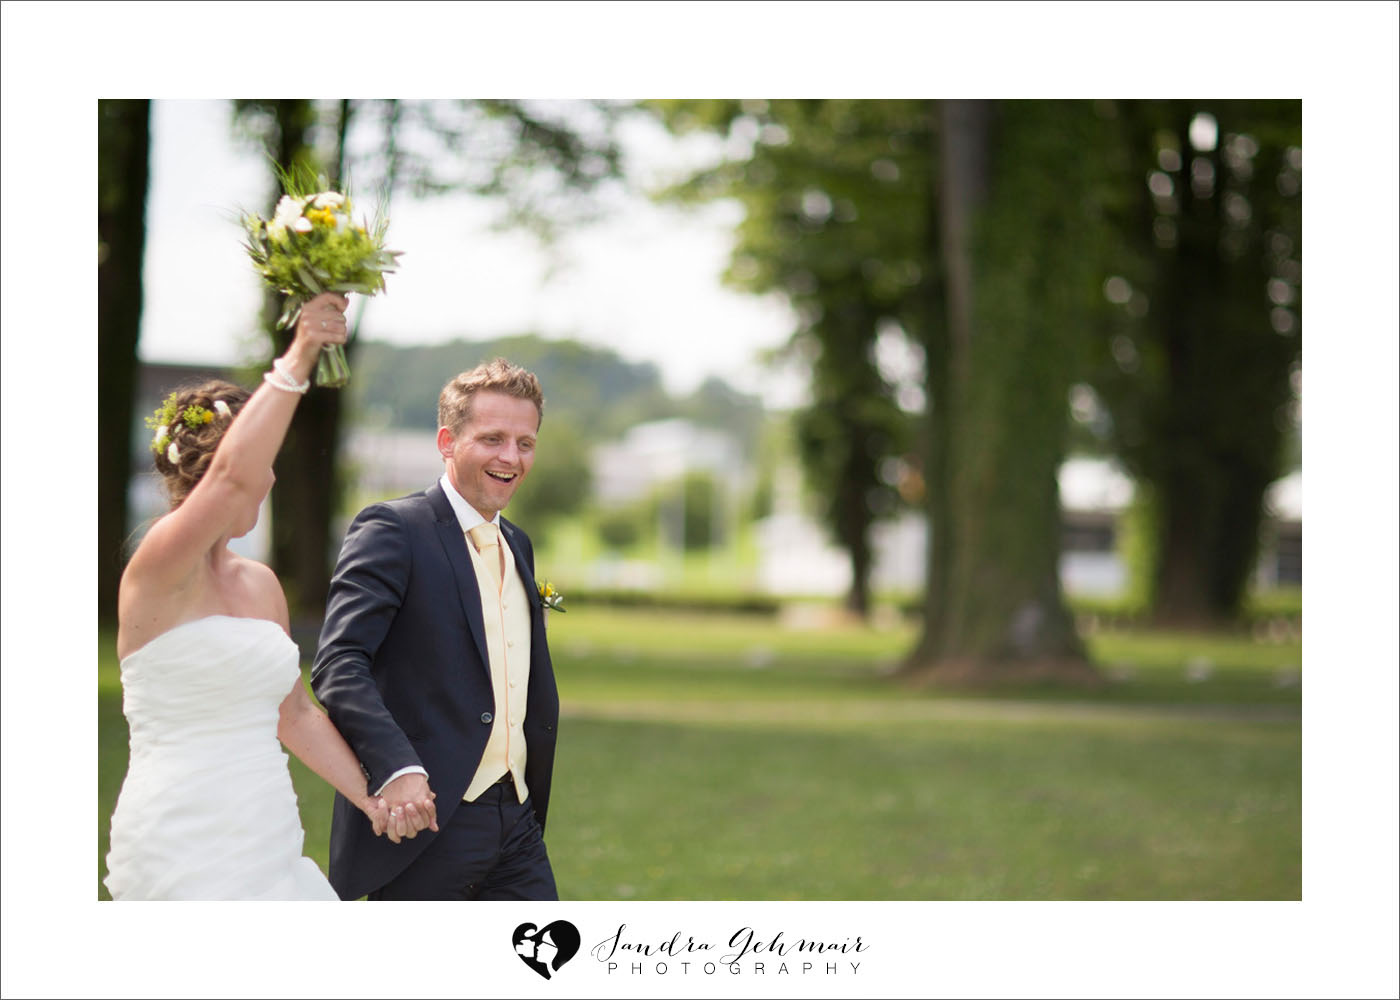 035_heiraten_am_see_spitzvilla_sandra_gehmair